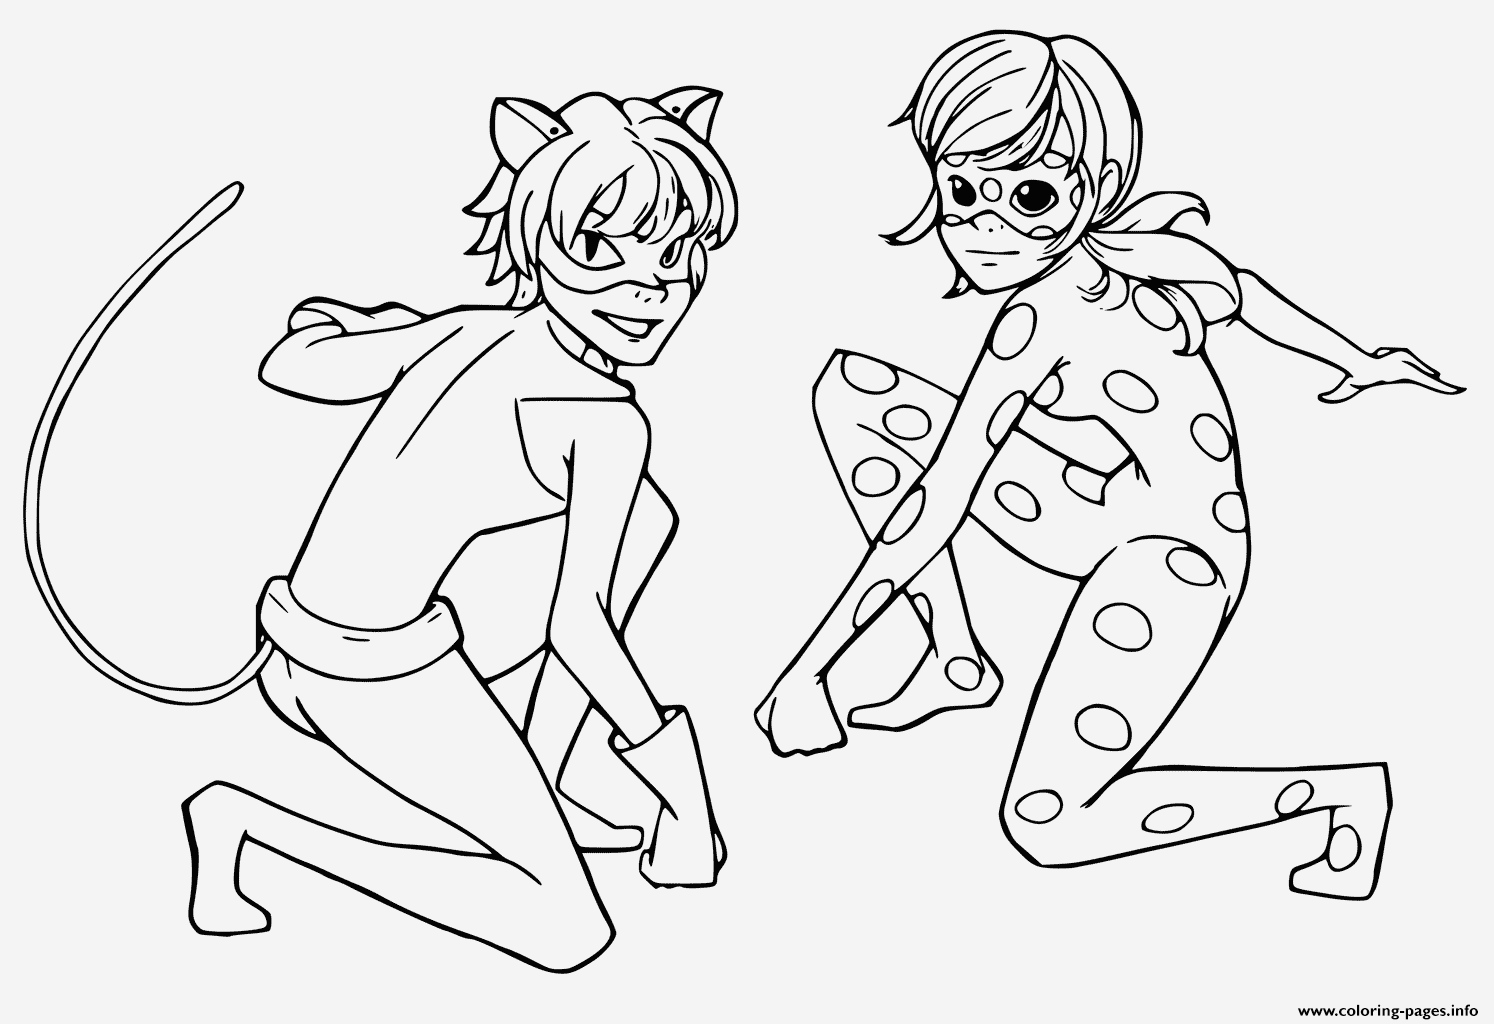 Coloriage Ladybug Miraculous Unique Miraculous Tales Ladybug Black Cat Coloring Pages Printable Of Coloriage Ladybug Miraculous